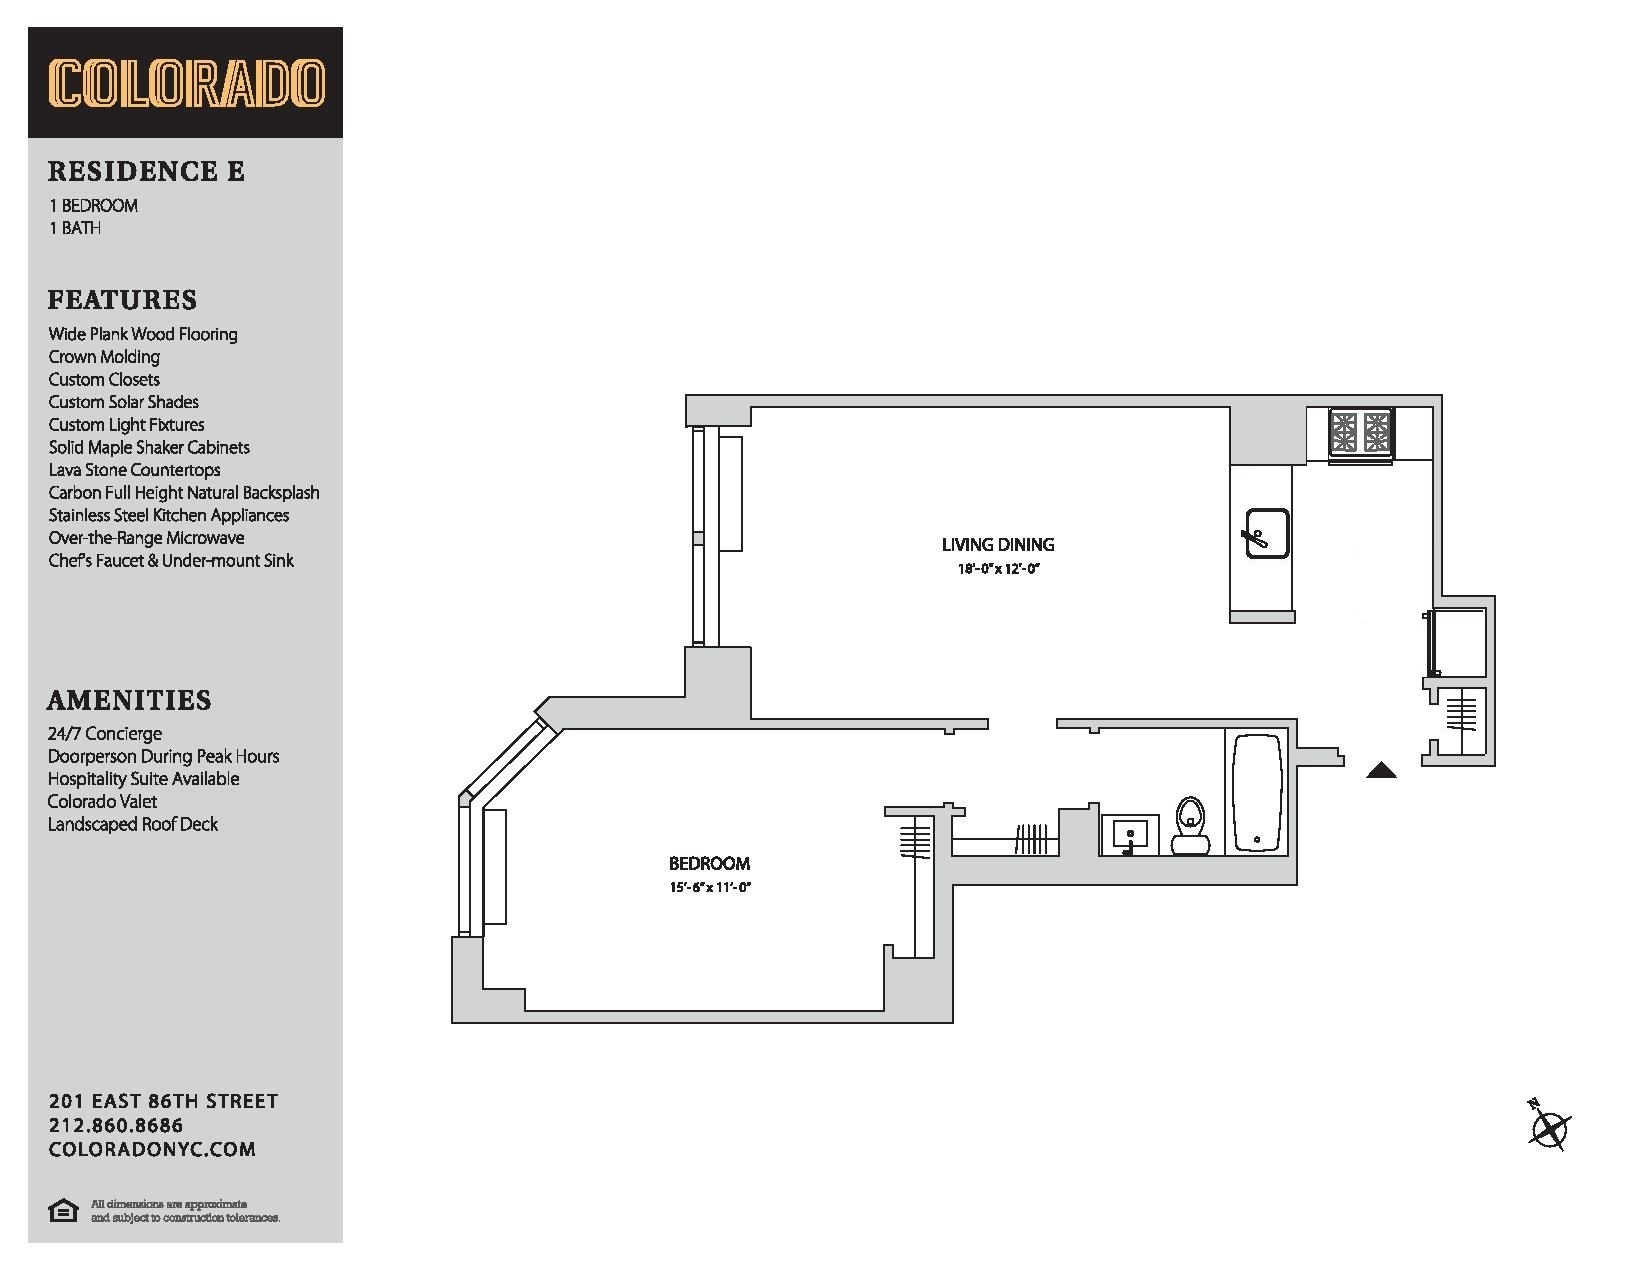 Floor plan for 11-E